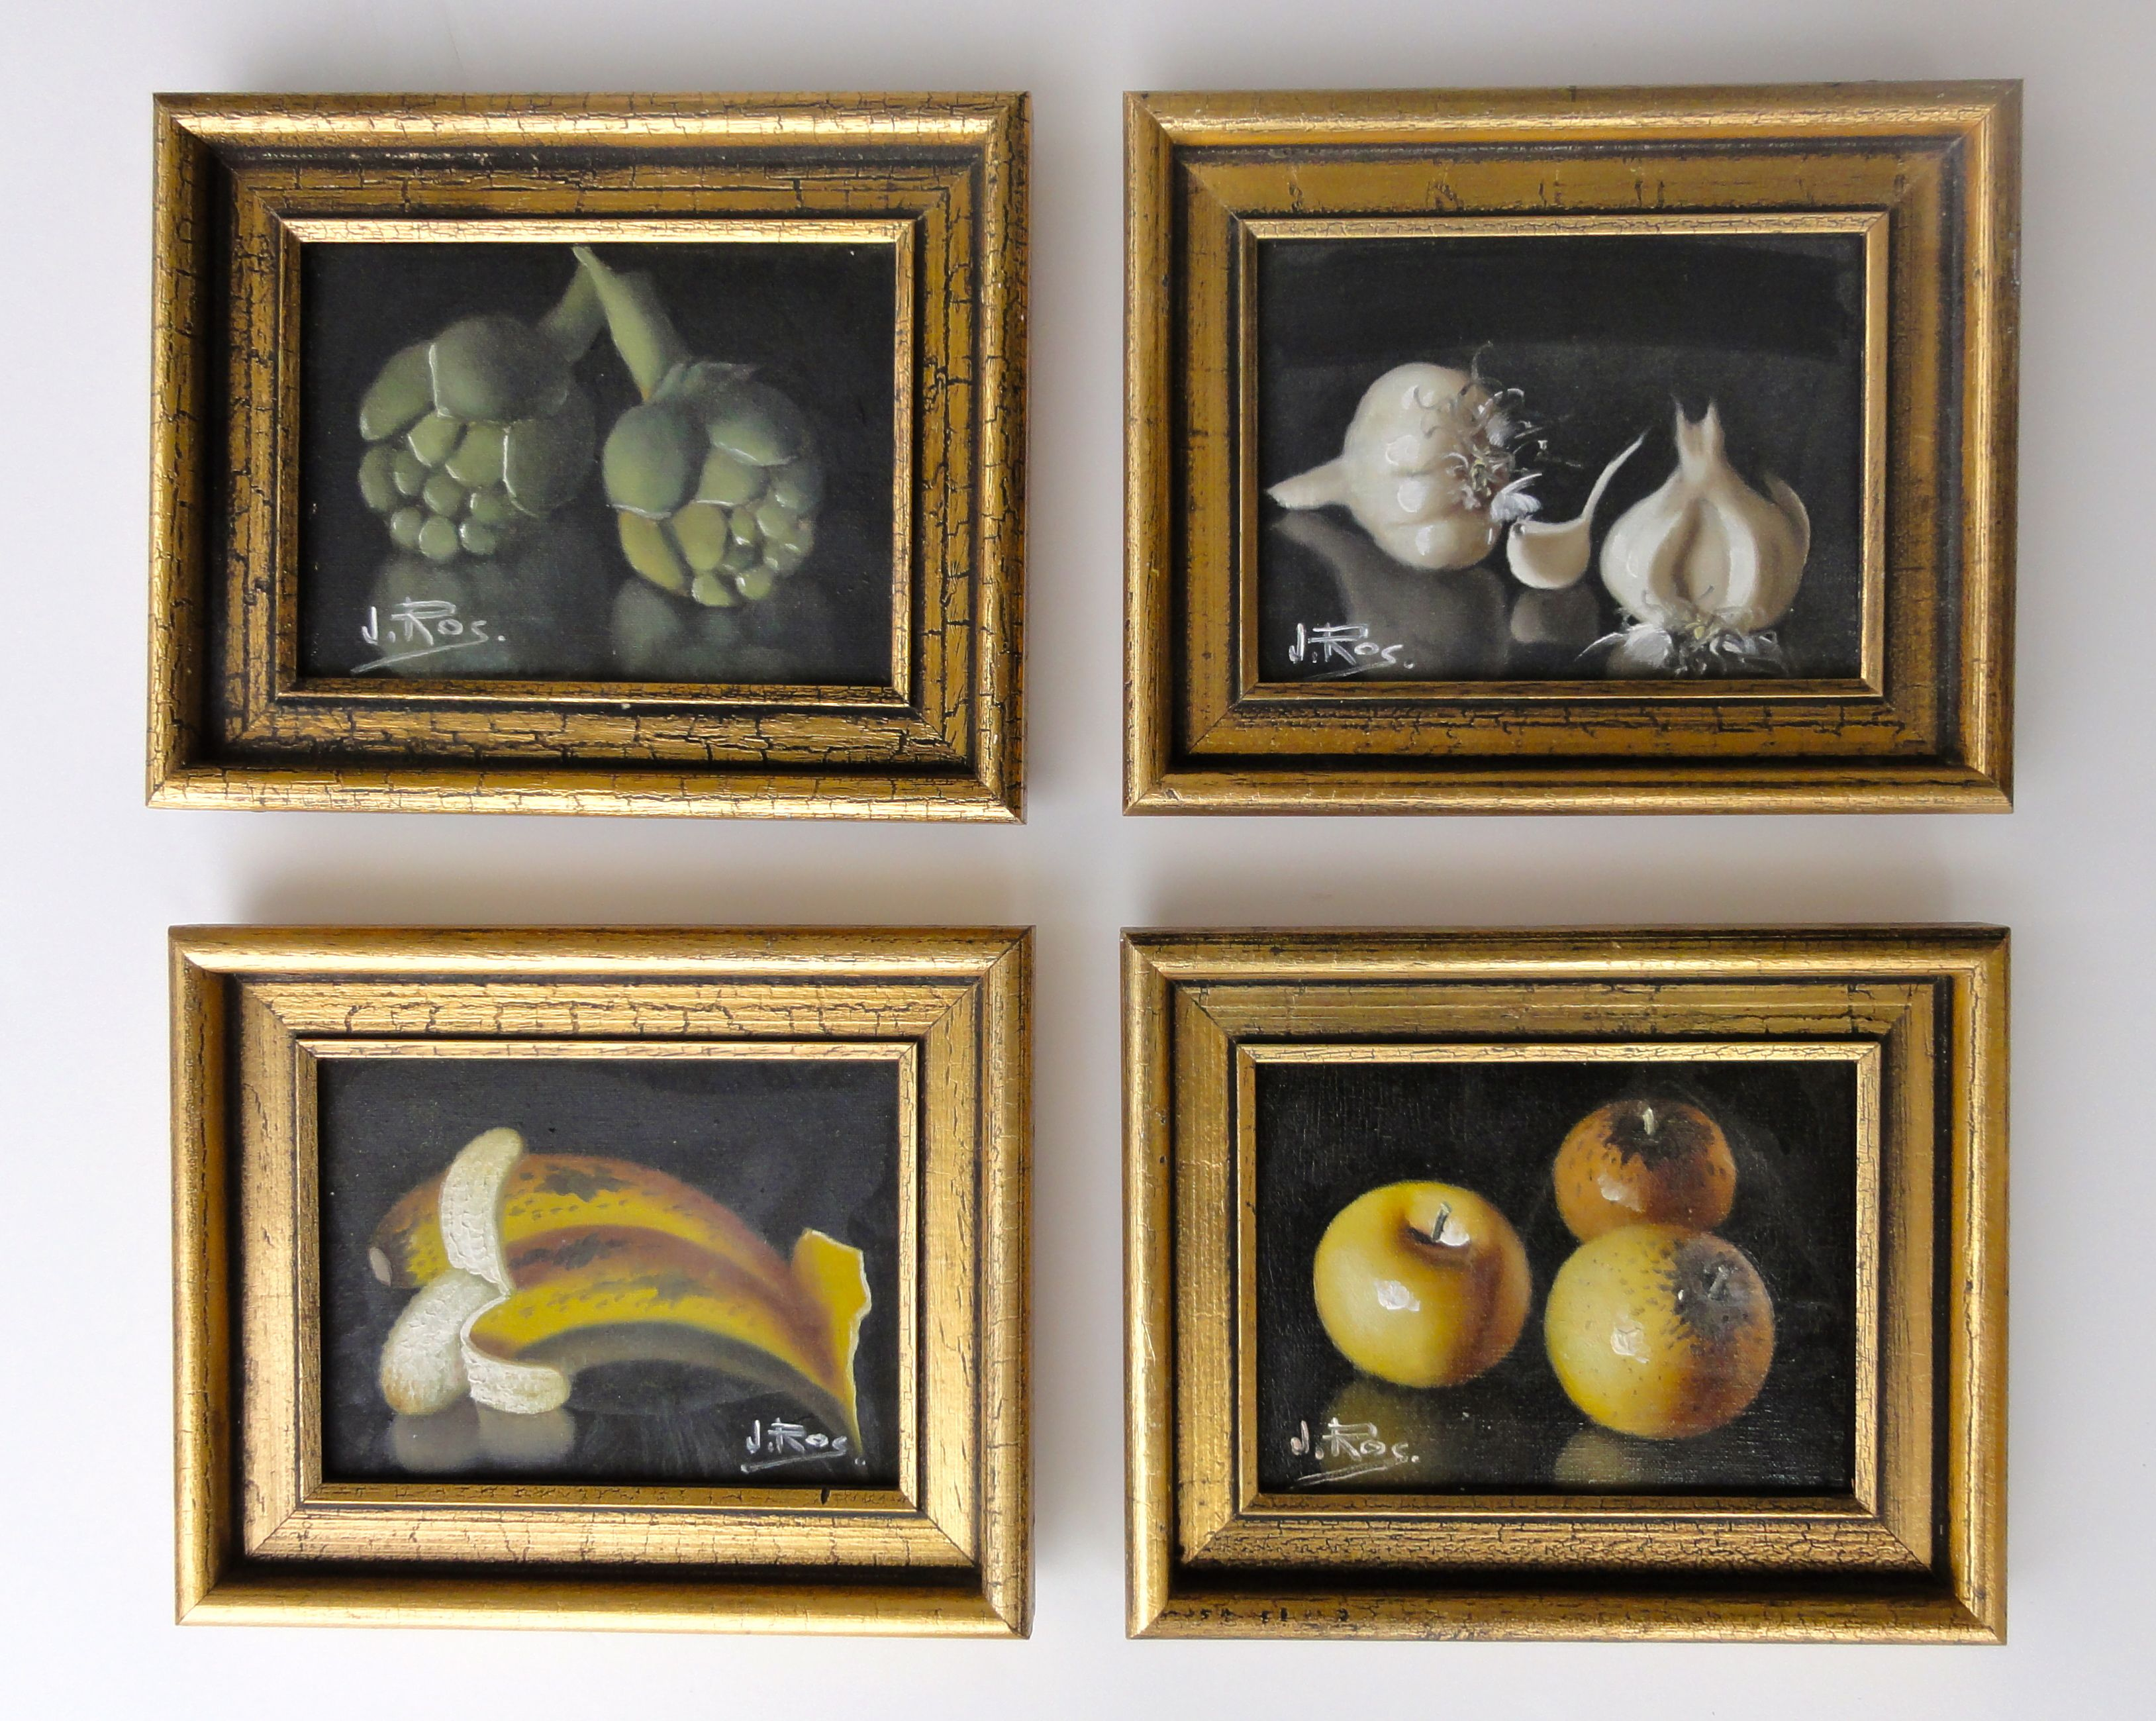 kitchen paintingsSet of 4 miniature kitchen paintings signed by J Ros Artichoke